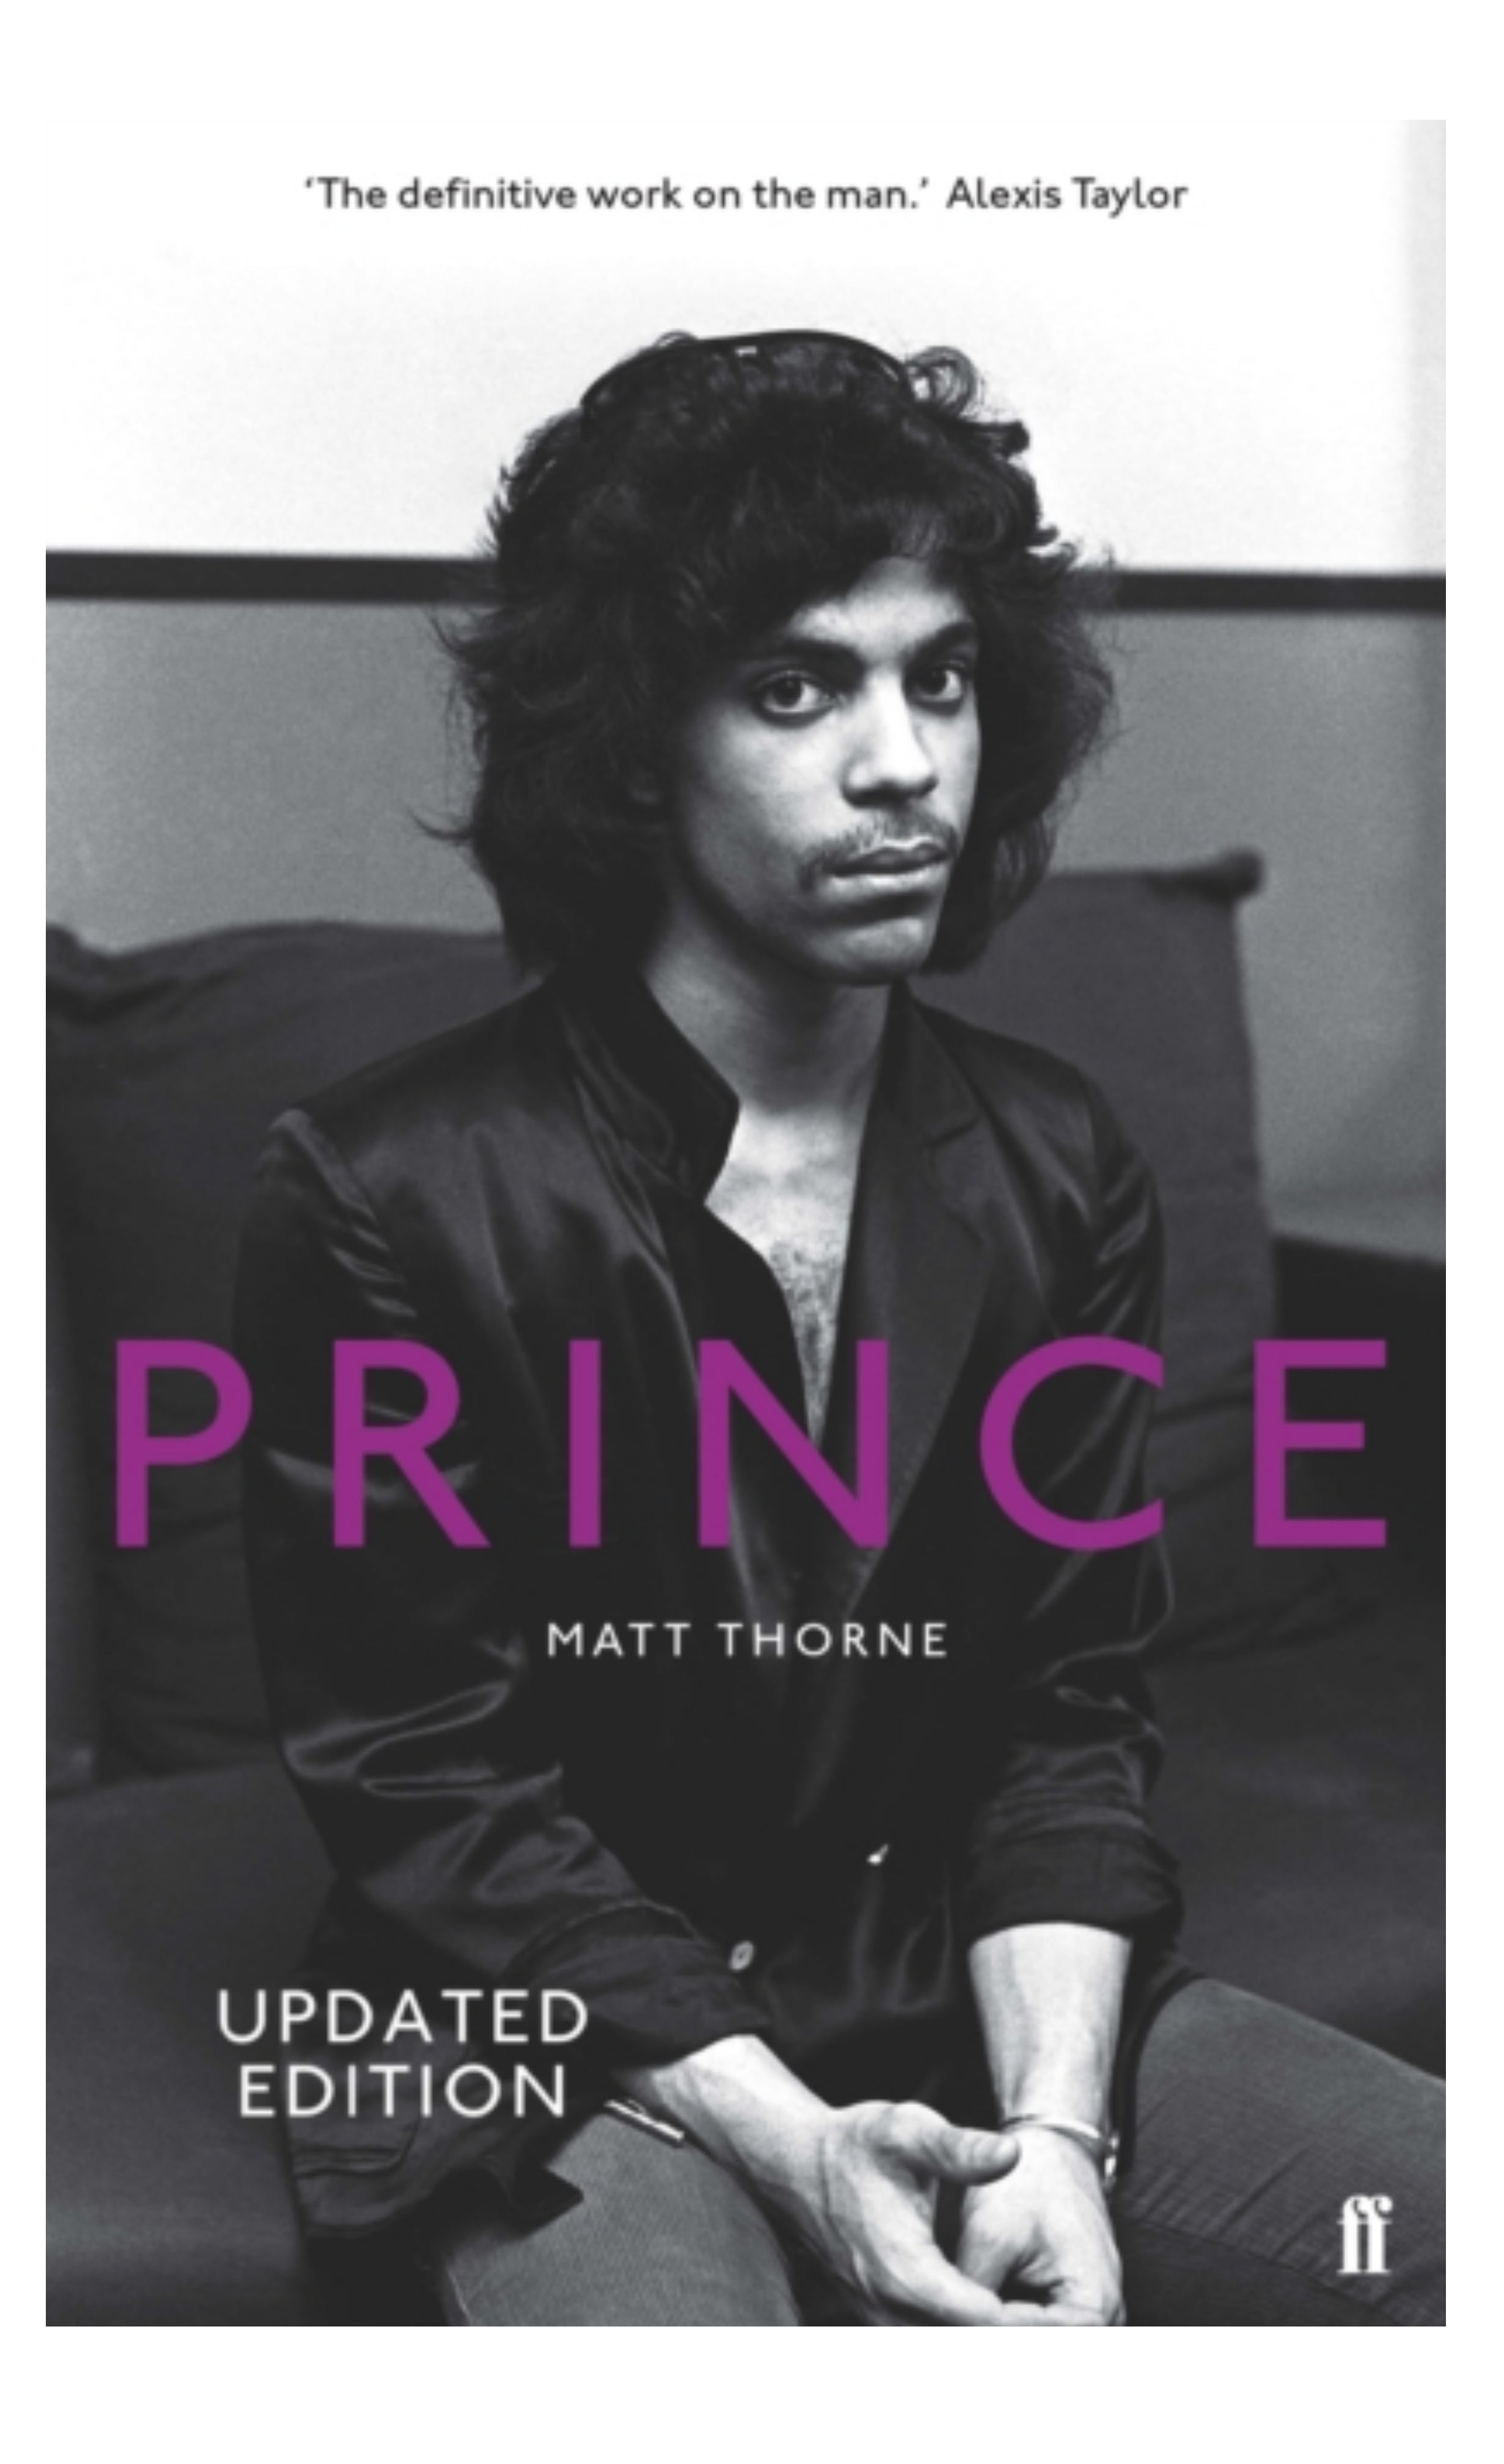 Prince by Matt Thorne Paperback Softback Book 608 Pages Brand New